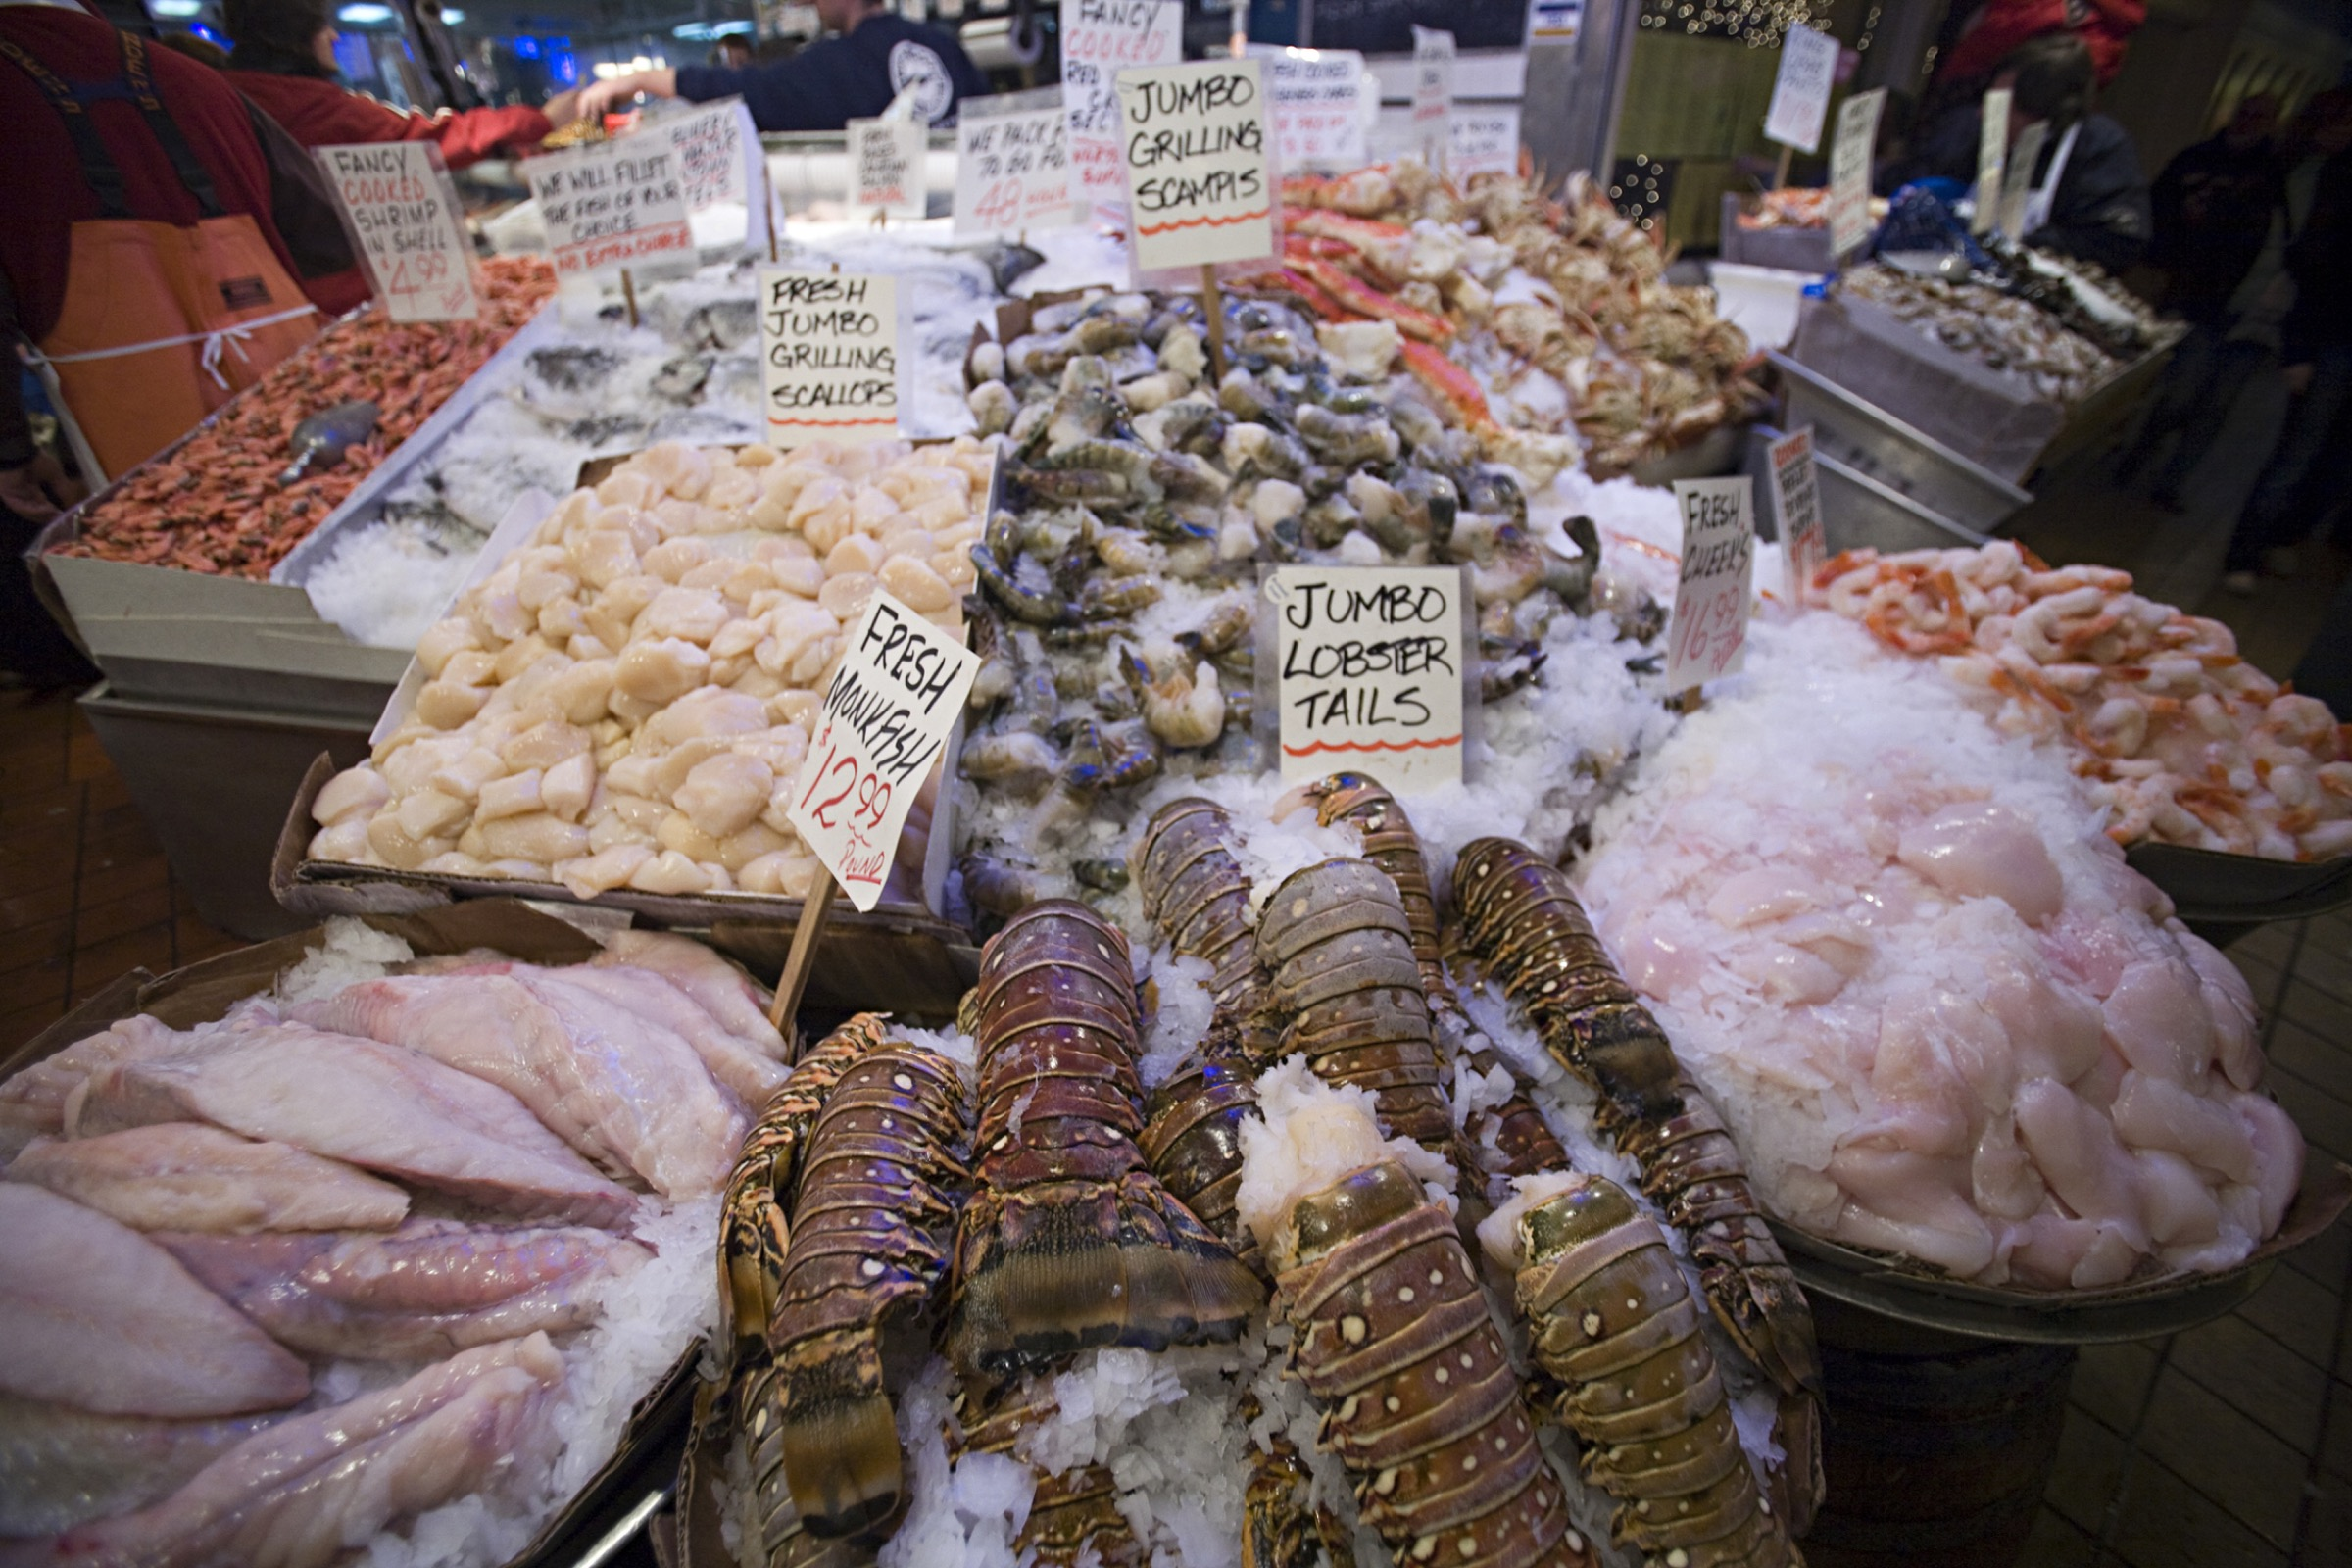 A variety of seafood is displayed on ice at the Pike Street Market in Seattle, Washington. Photograph by Aaron Black